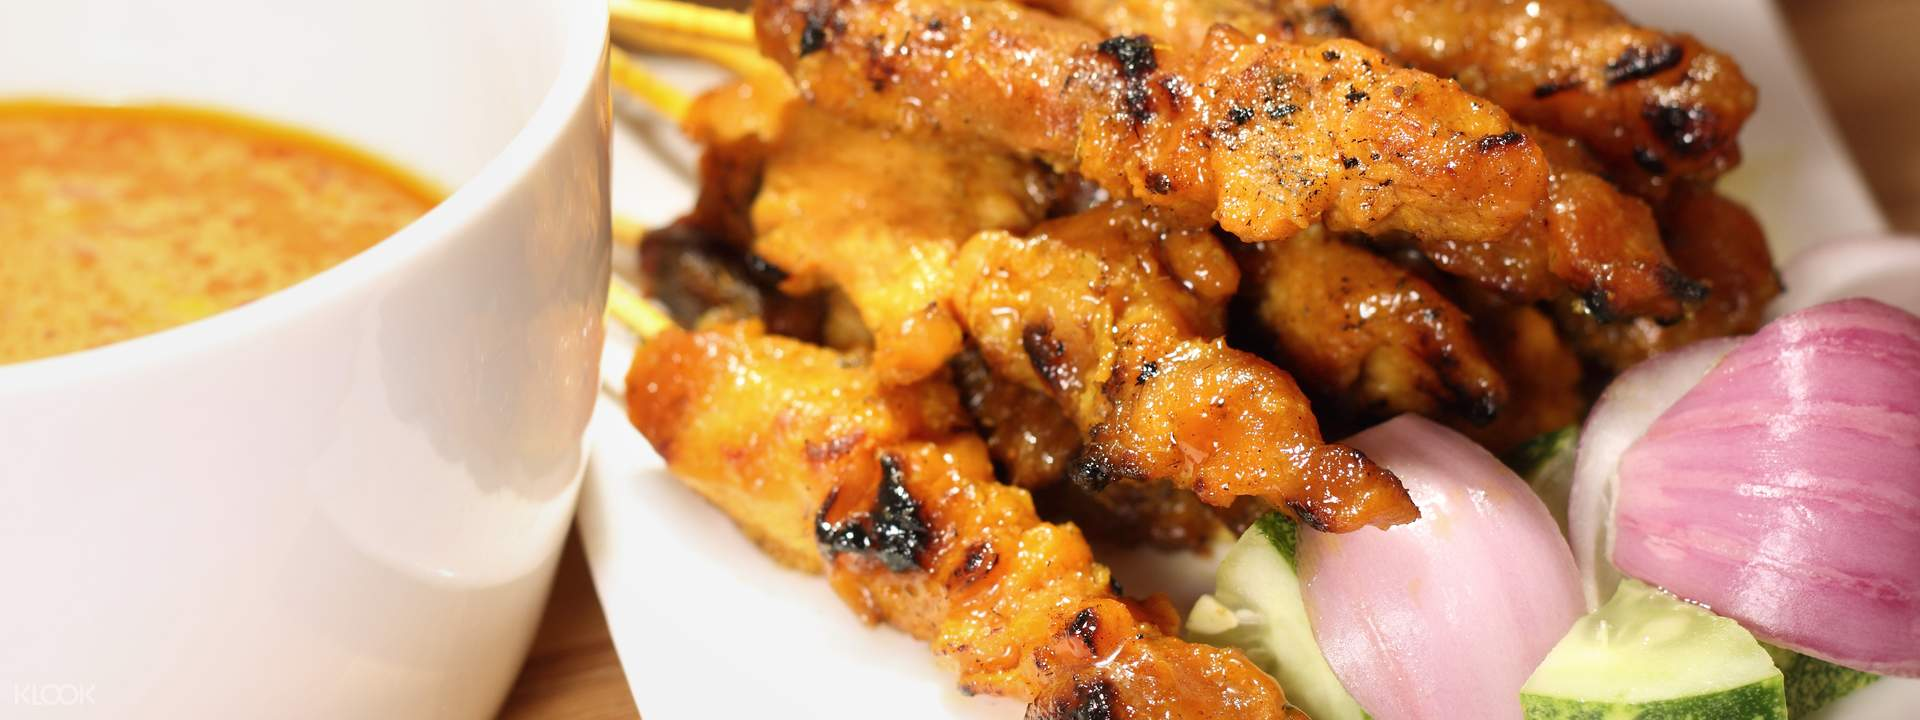 Heritage on a Plate Malaysian Food Tour - Klook